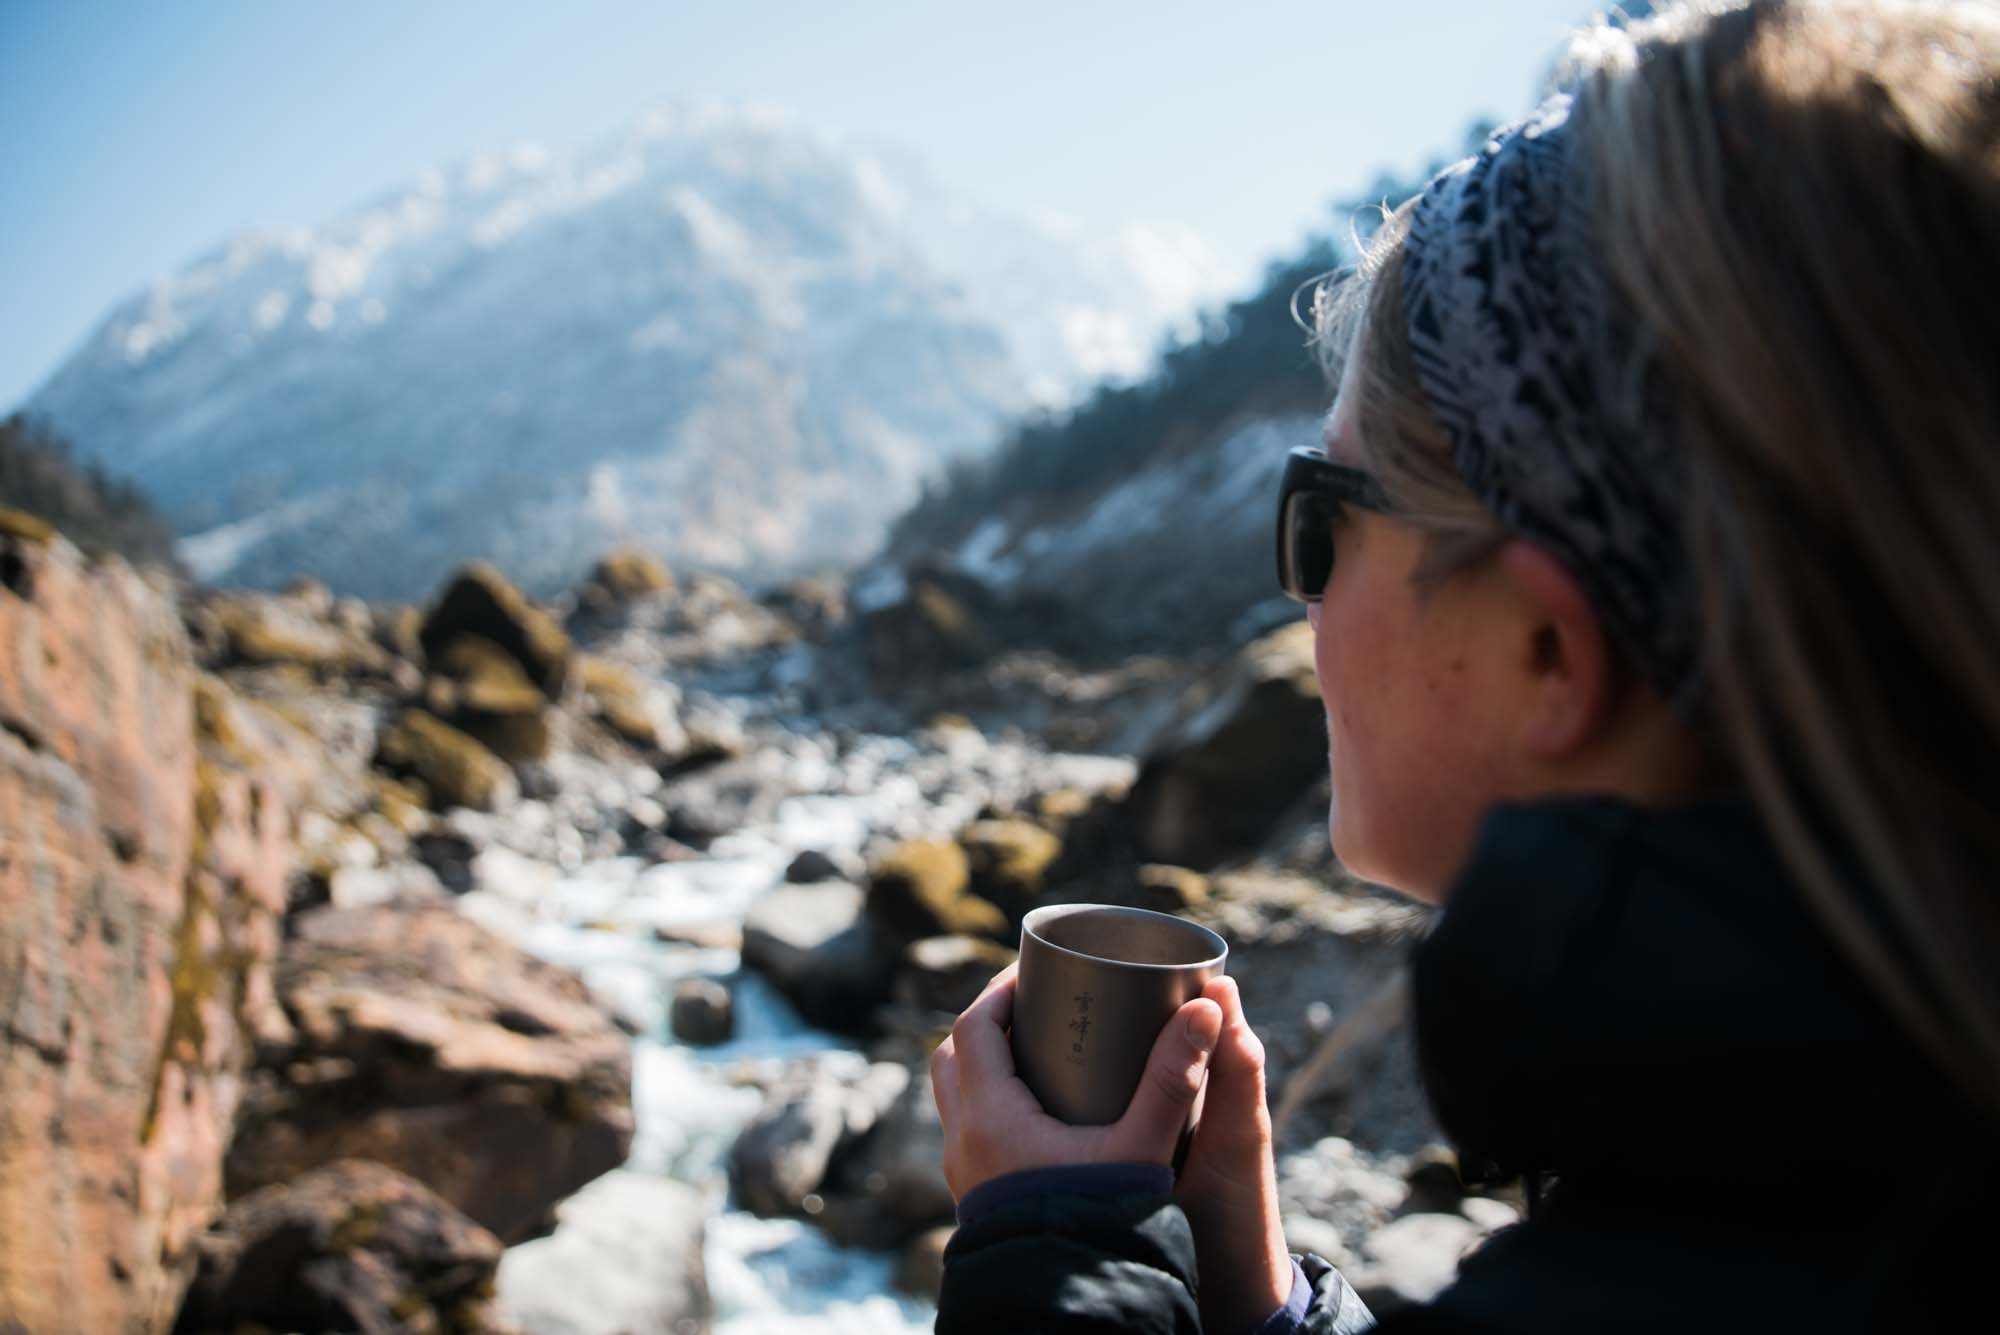 Charlotte Austin in Nepal. Photo by Bryan Aulick.